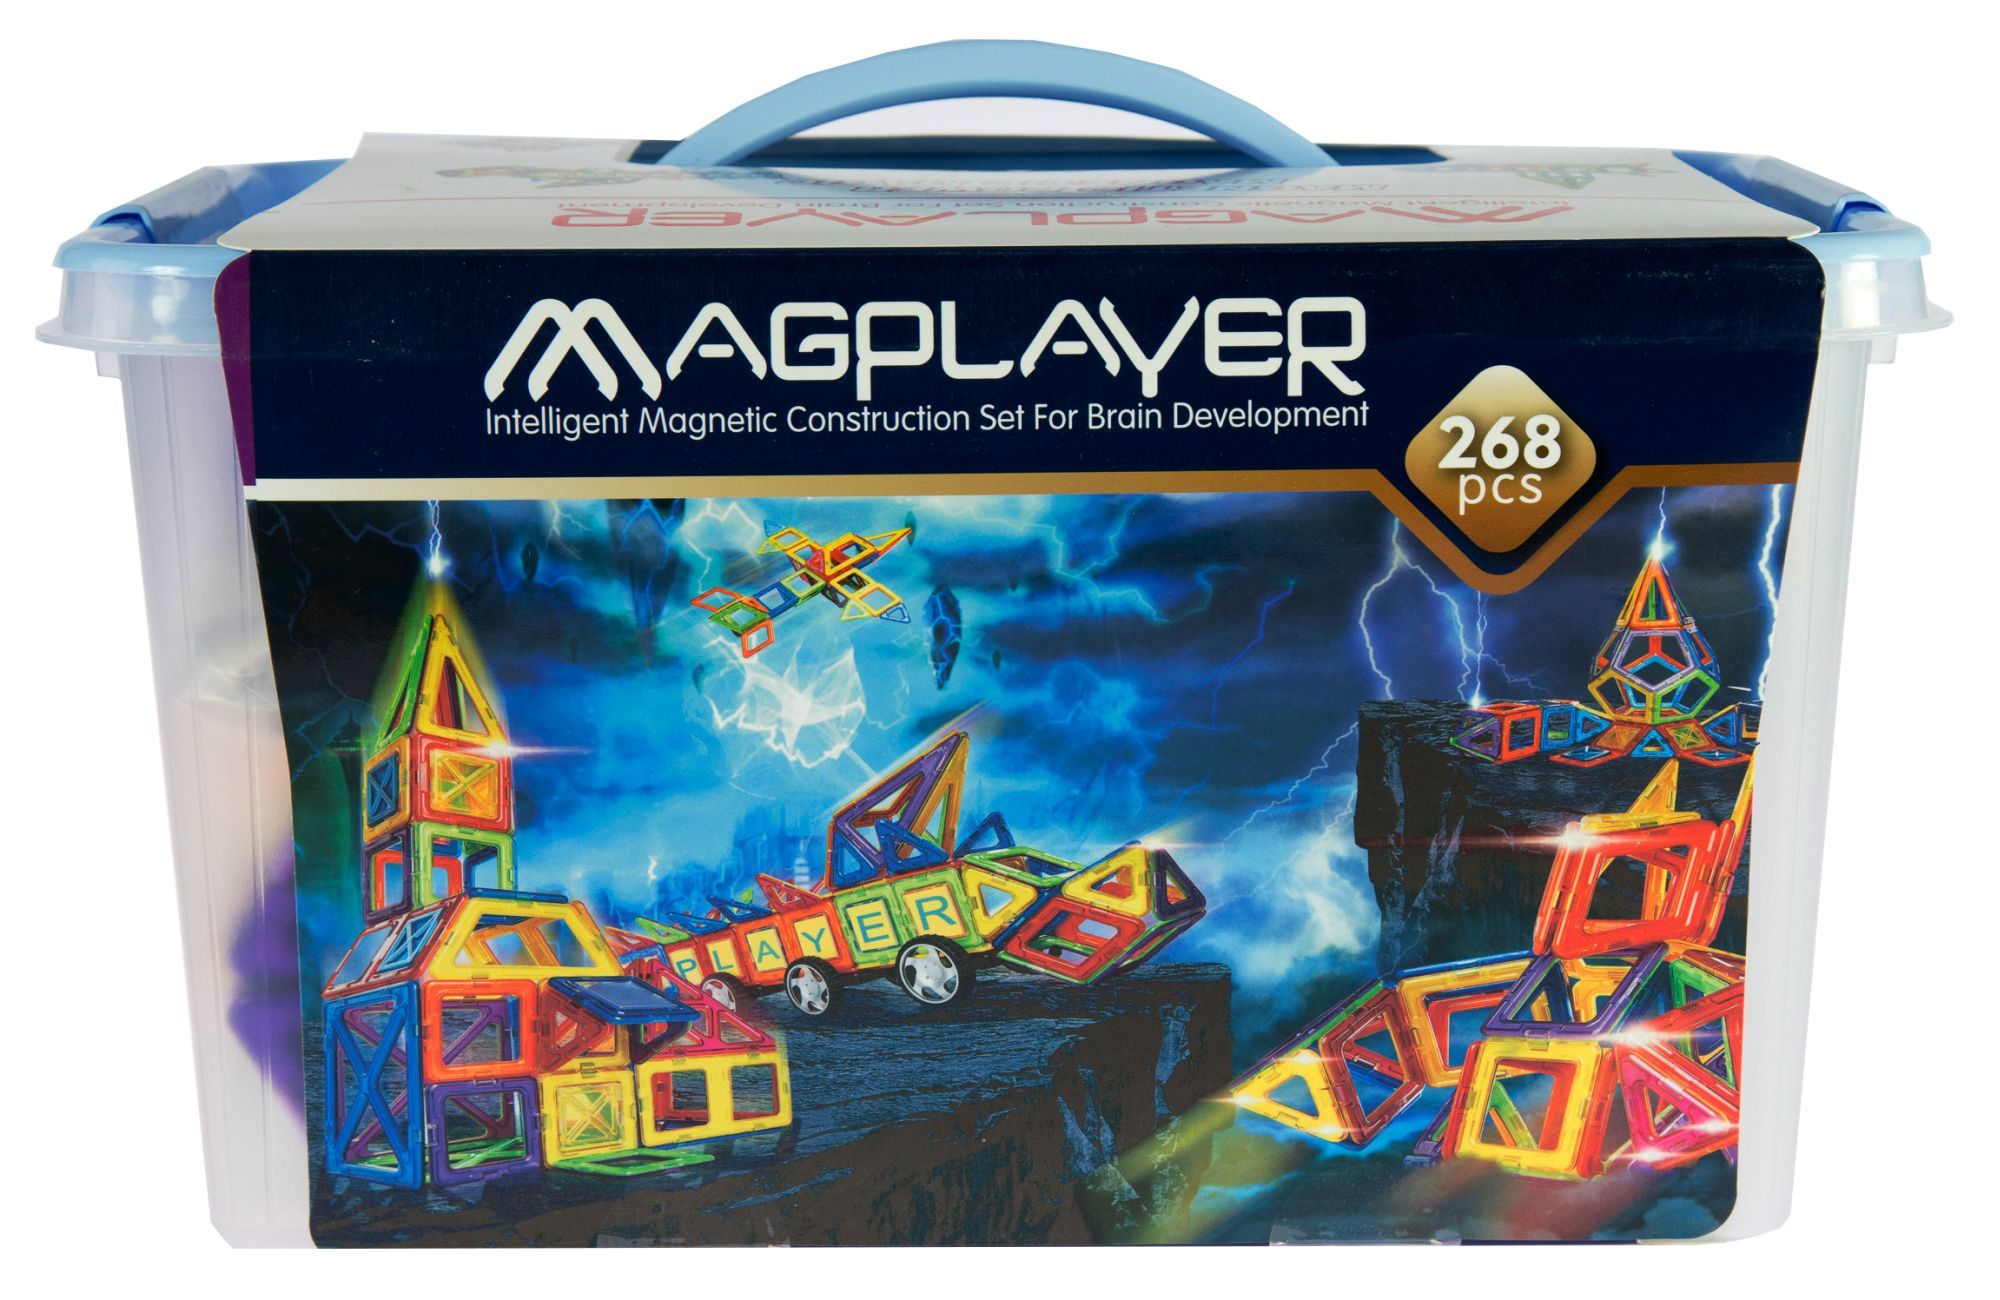 Magplayer Transformers Animated Toys (268-piece set)